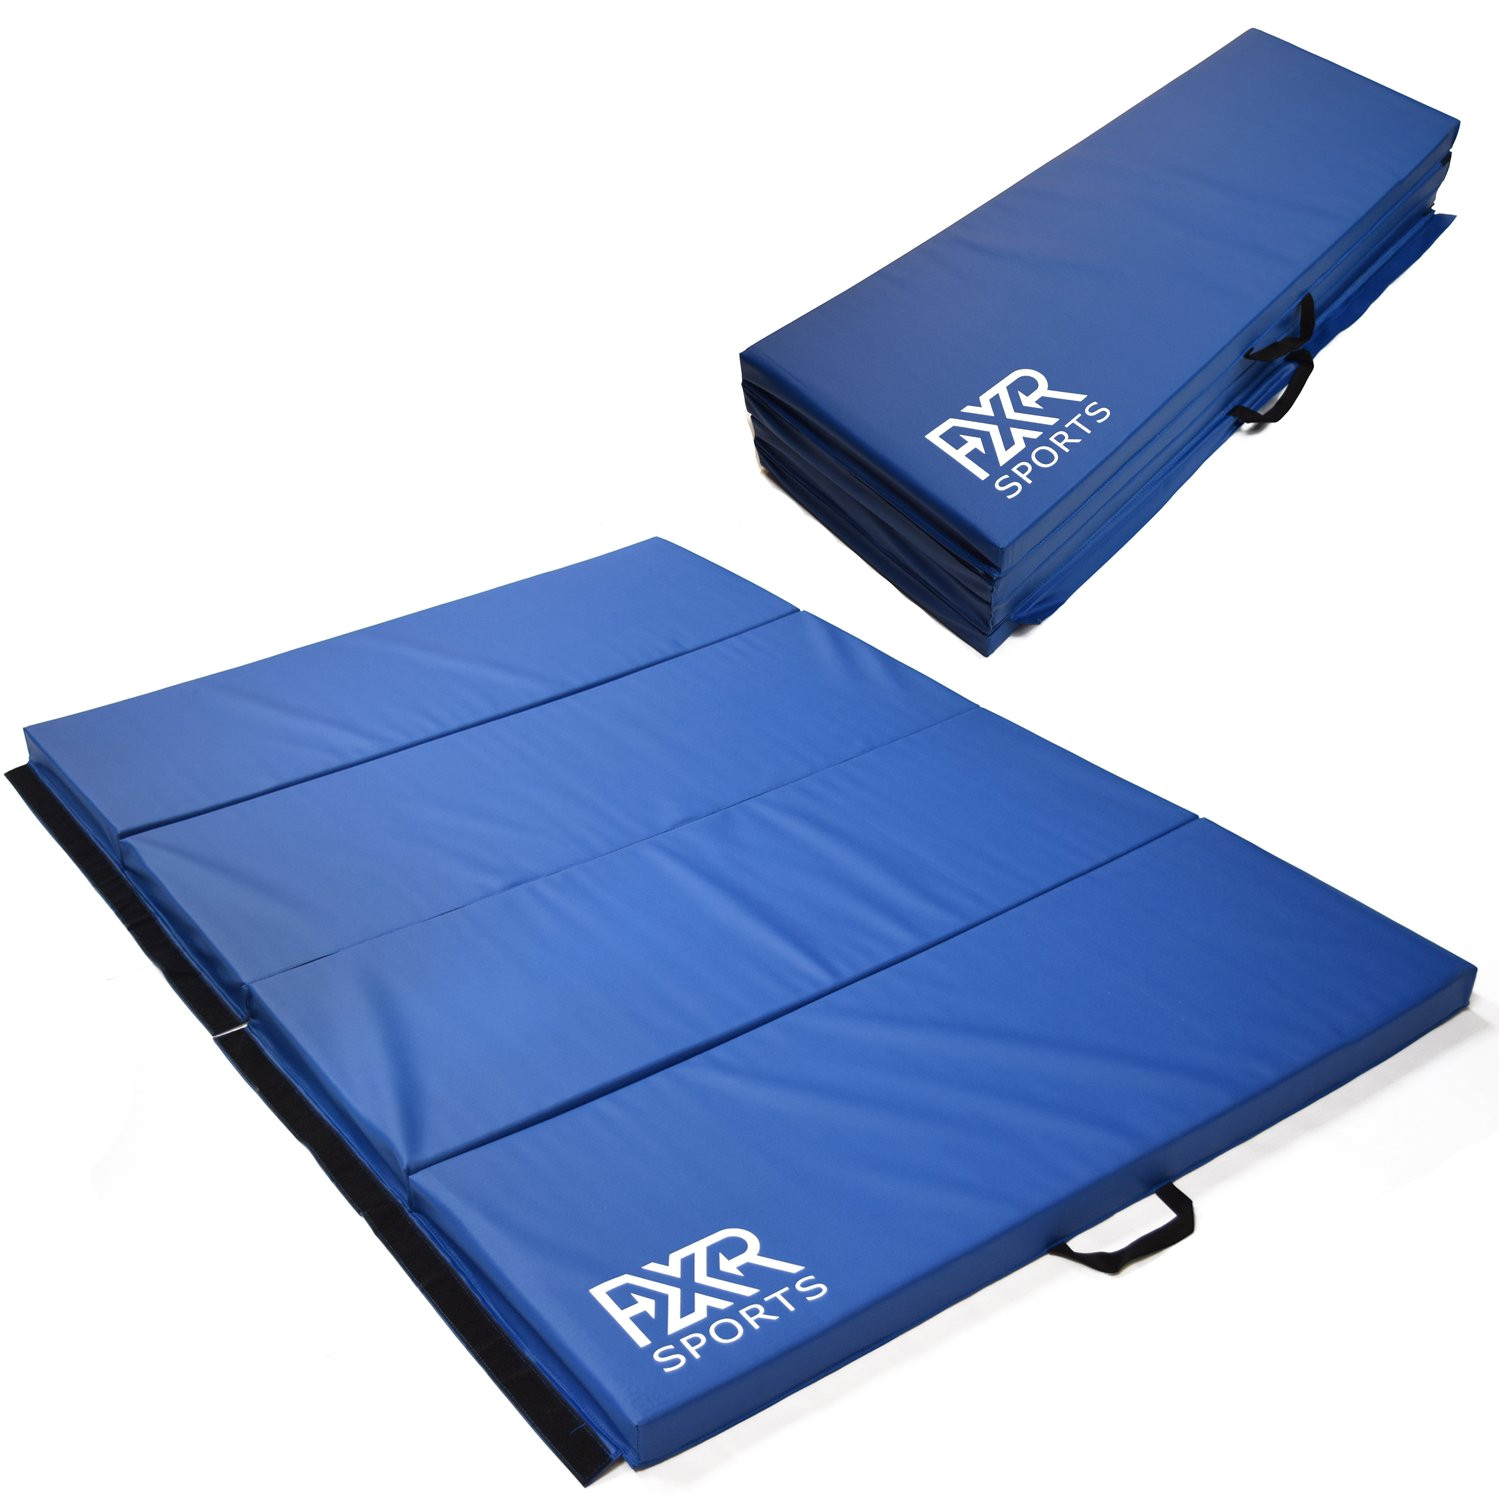 fxr sports 6ft 8ft four folding gymnastics exercise physio training fitness mats 2 amazon co uk sports outdoors